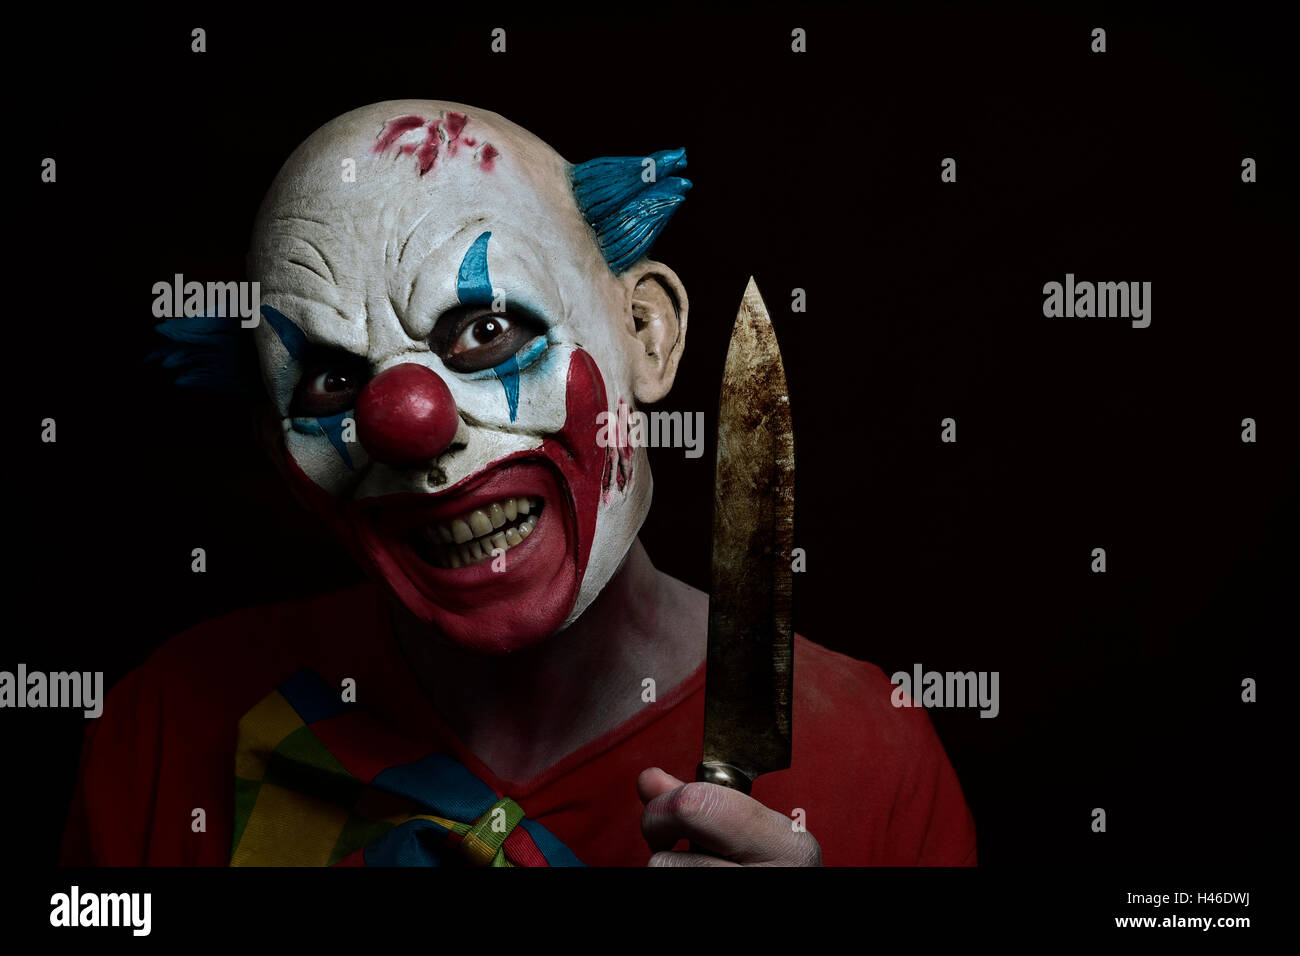 a scary evil clown with a big knife in his hand, against a dark background - Stock Image